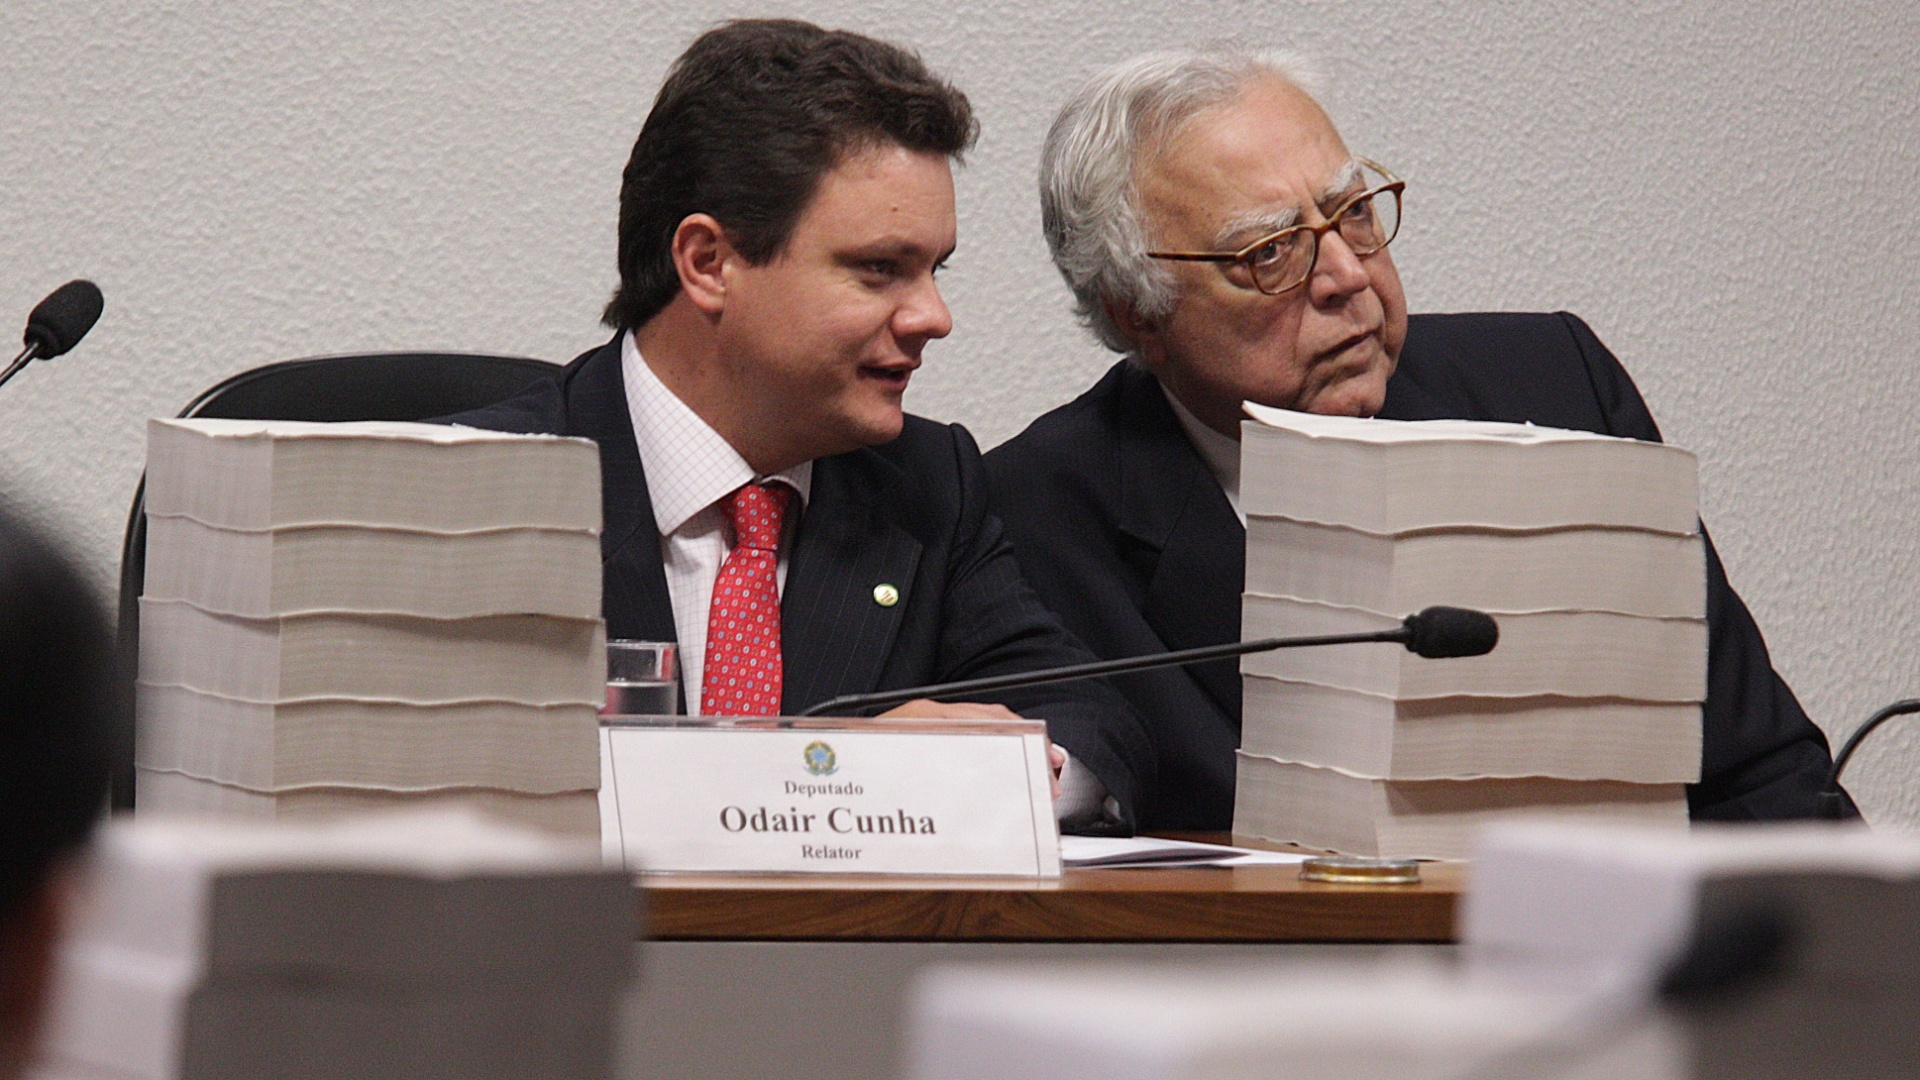 22.nov.2012 - Foi adiada mais uma vez a leitura do relatrio final da CPI do Cachoeira, em Braslia. A leitura seria feita pelo relator da comisso, Odair Cunha (PT-MG) ( esq.). O deputado Miro Teixeira (PDT-RJ) ( dir.) tambm faz parte do grupo de parlamentares da CPI